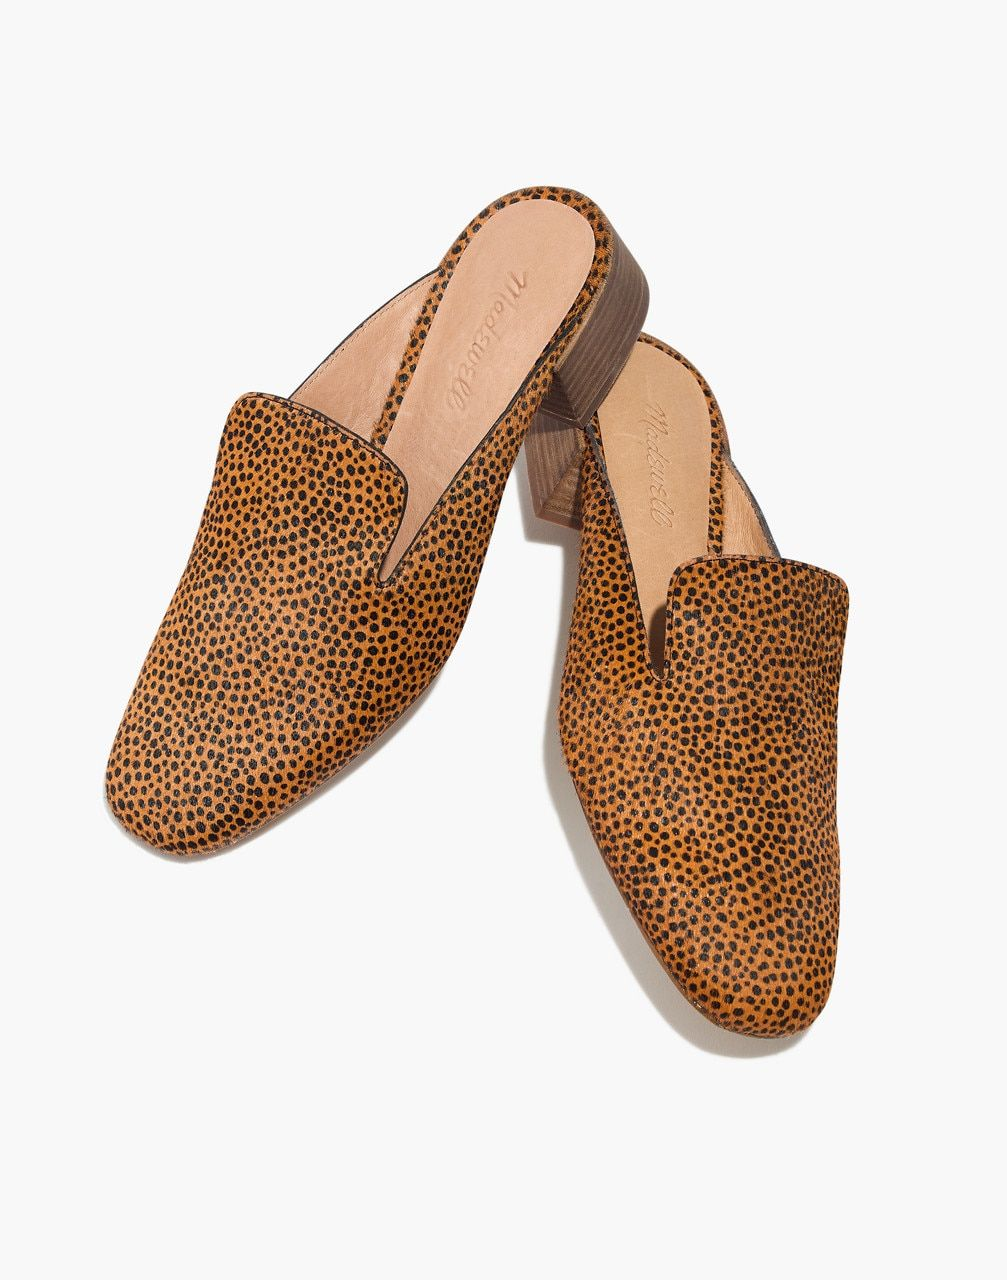 9014567cff4 Madewell The Willa Loafer Mule in Spotted Calf Hair